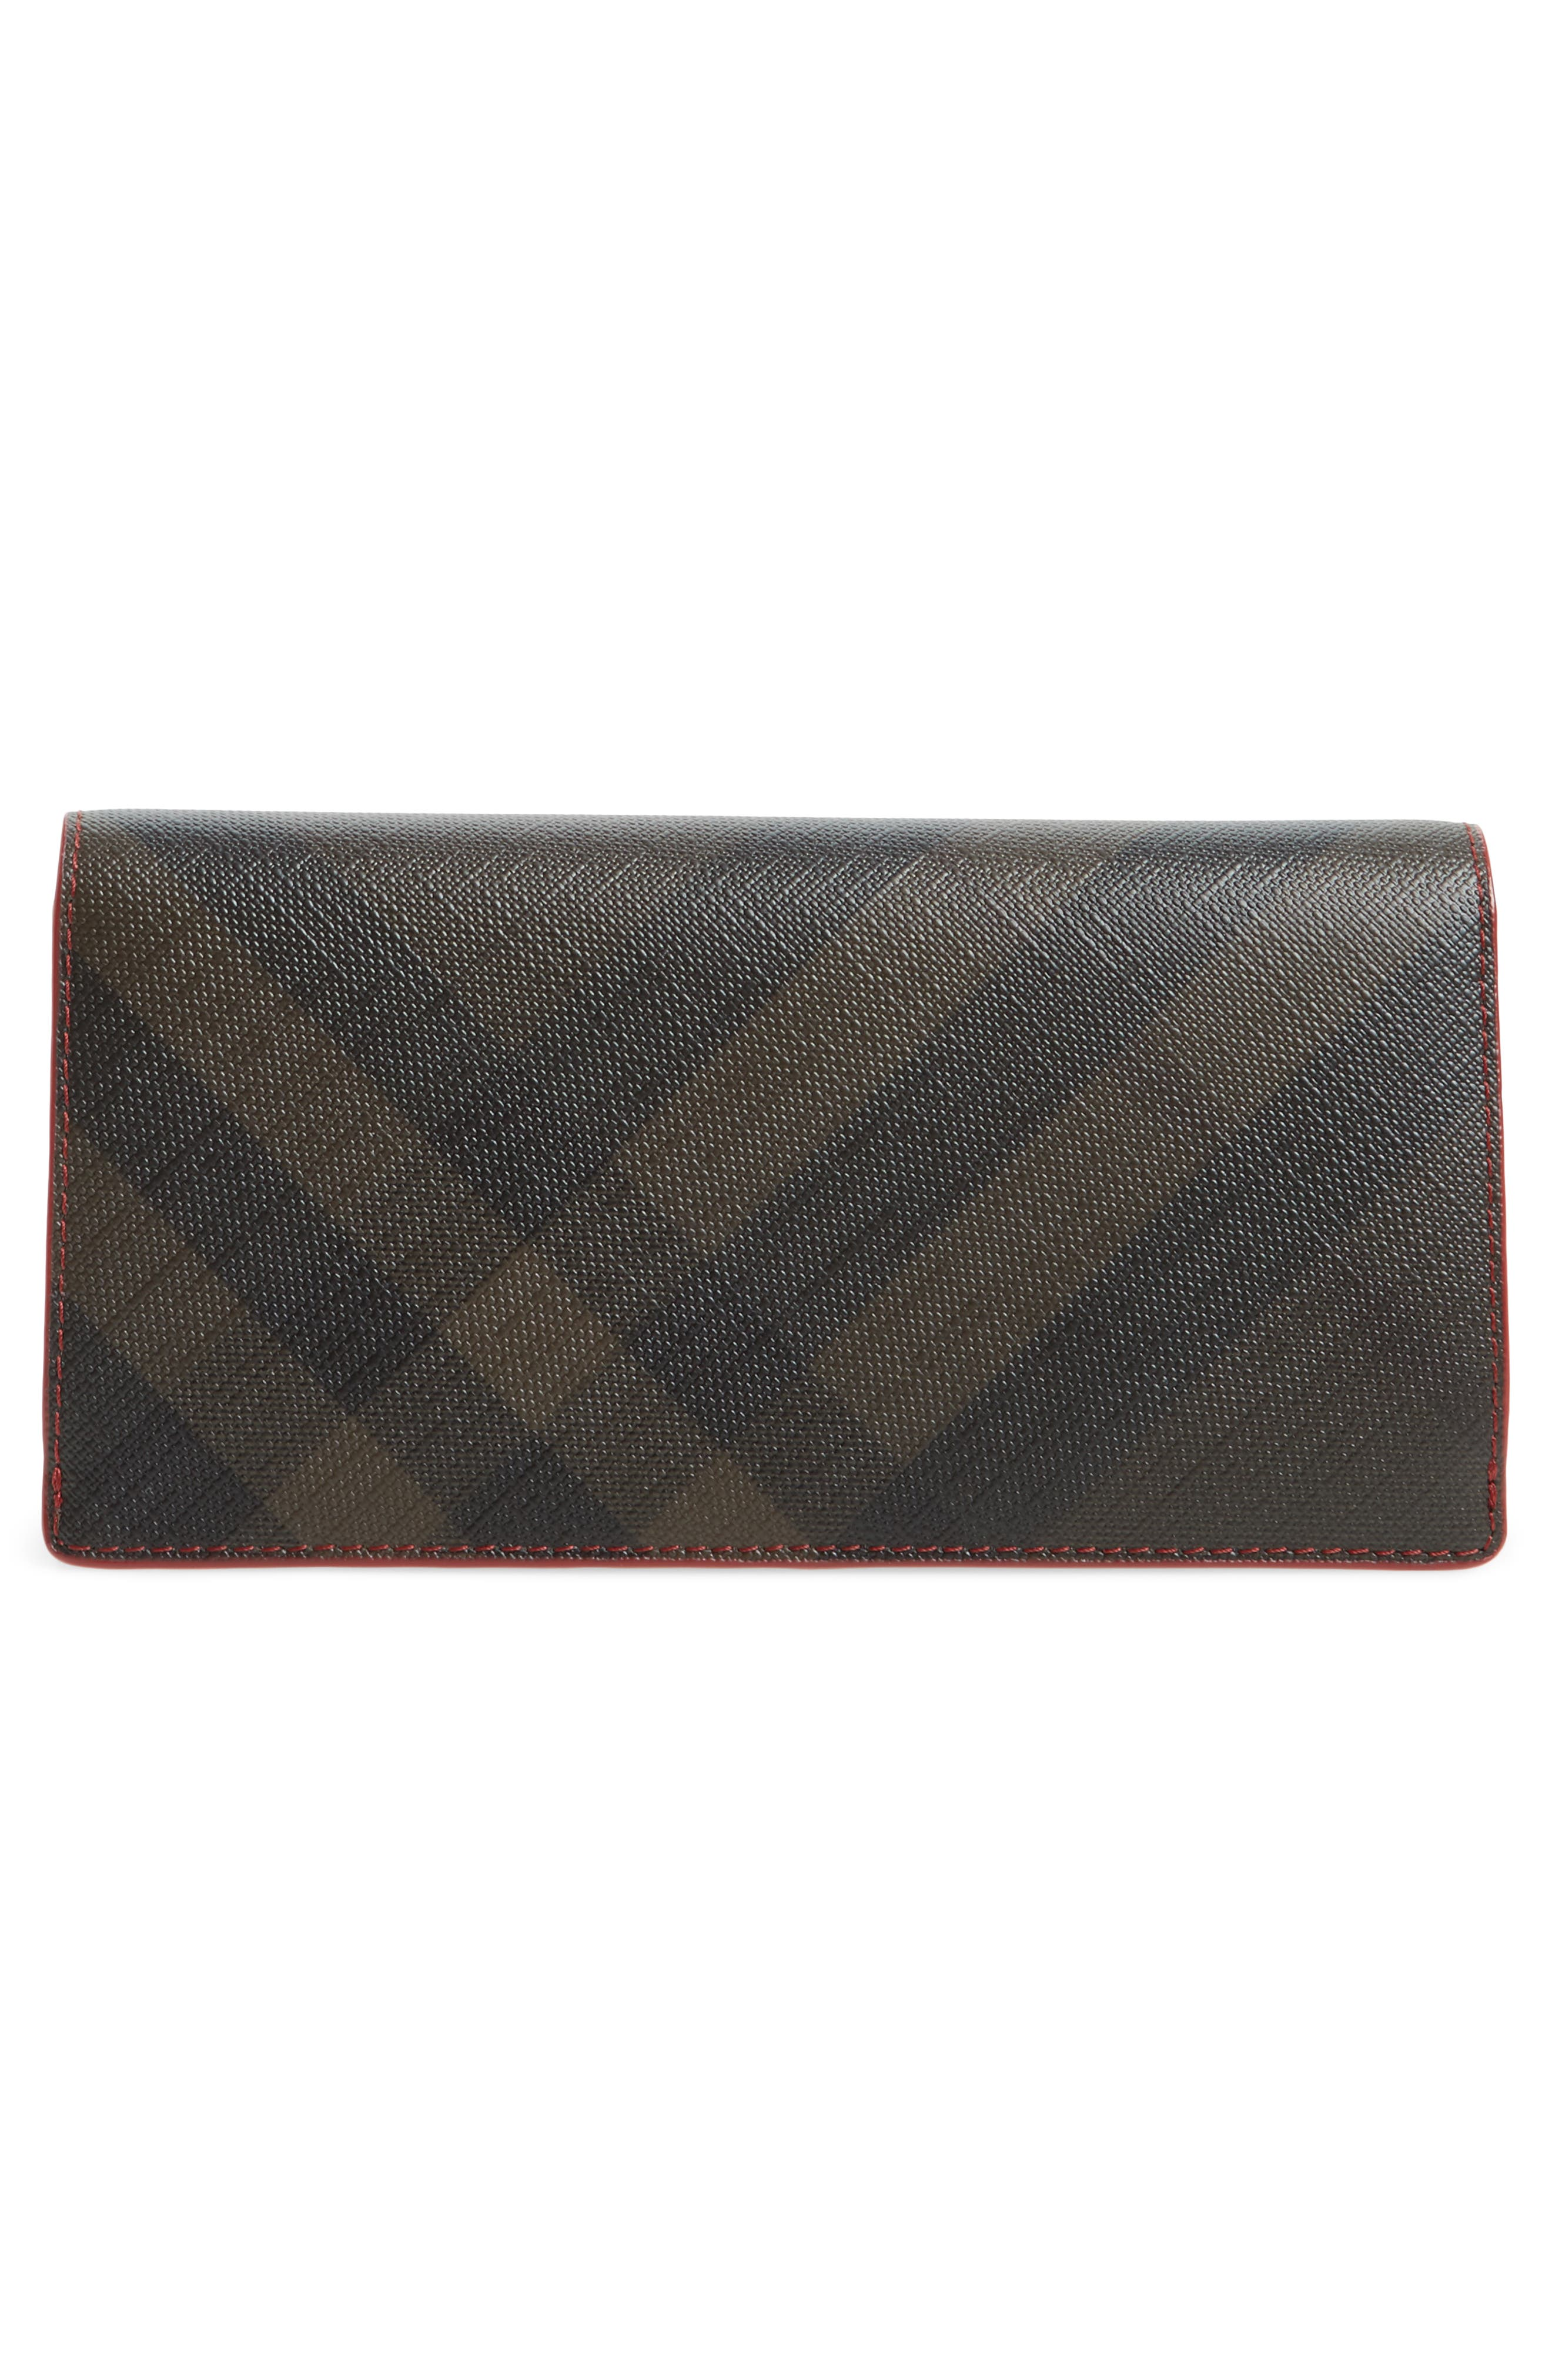 Check Wallet,                             Alternate thumbnail 3, color,                             Chocolate/ Red